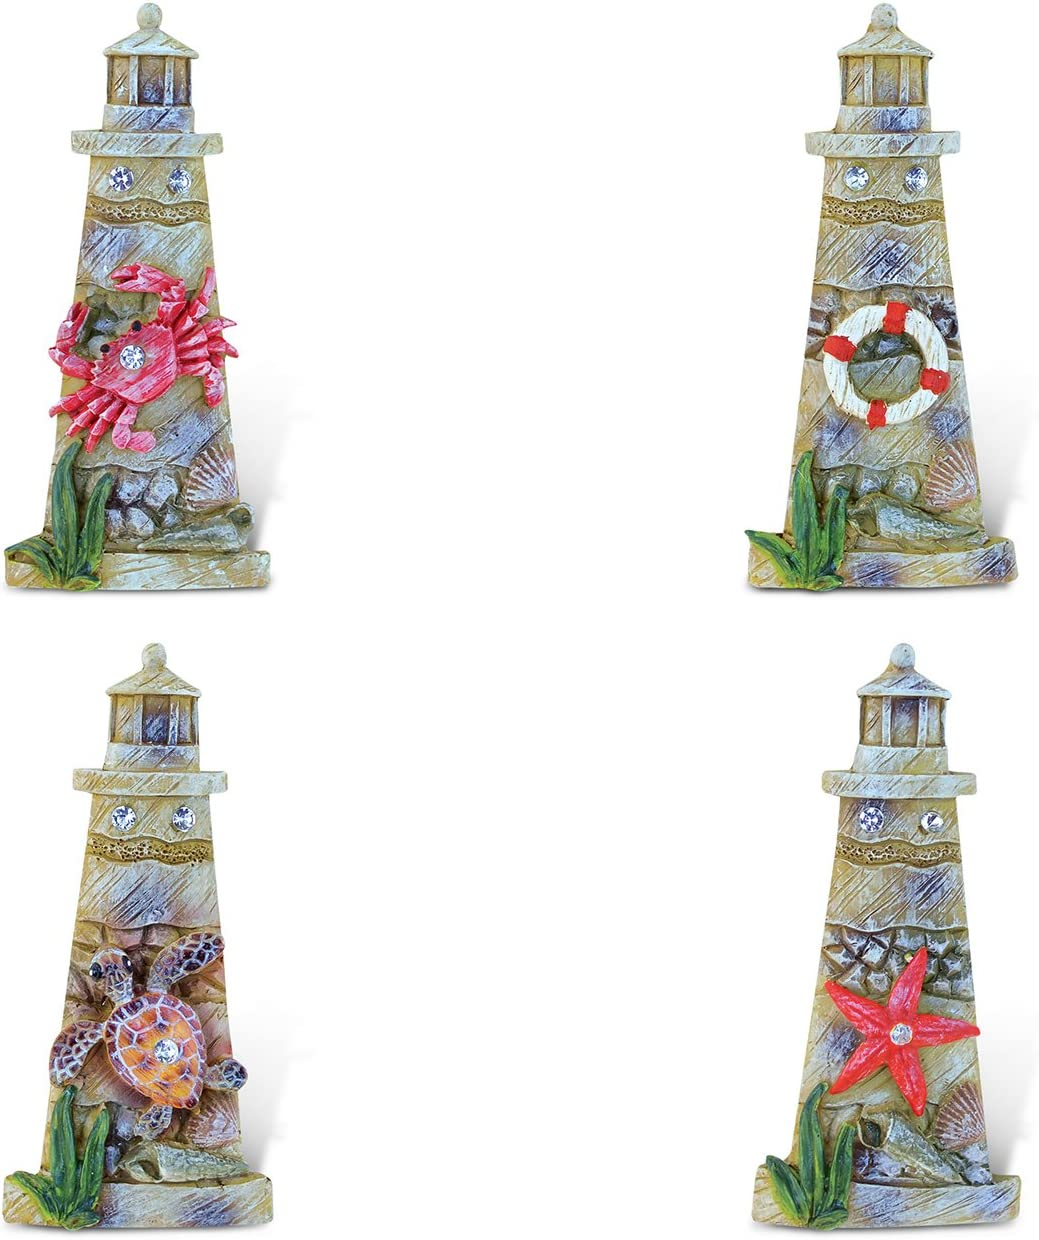 Puzzled Lighthouse Refrigerator Rockstone Magnet - Lighthouses Theme - Set of 4 - Unique Affordable Gift and Souvenir - Item #7601